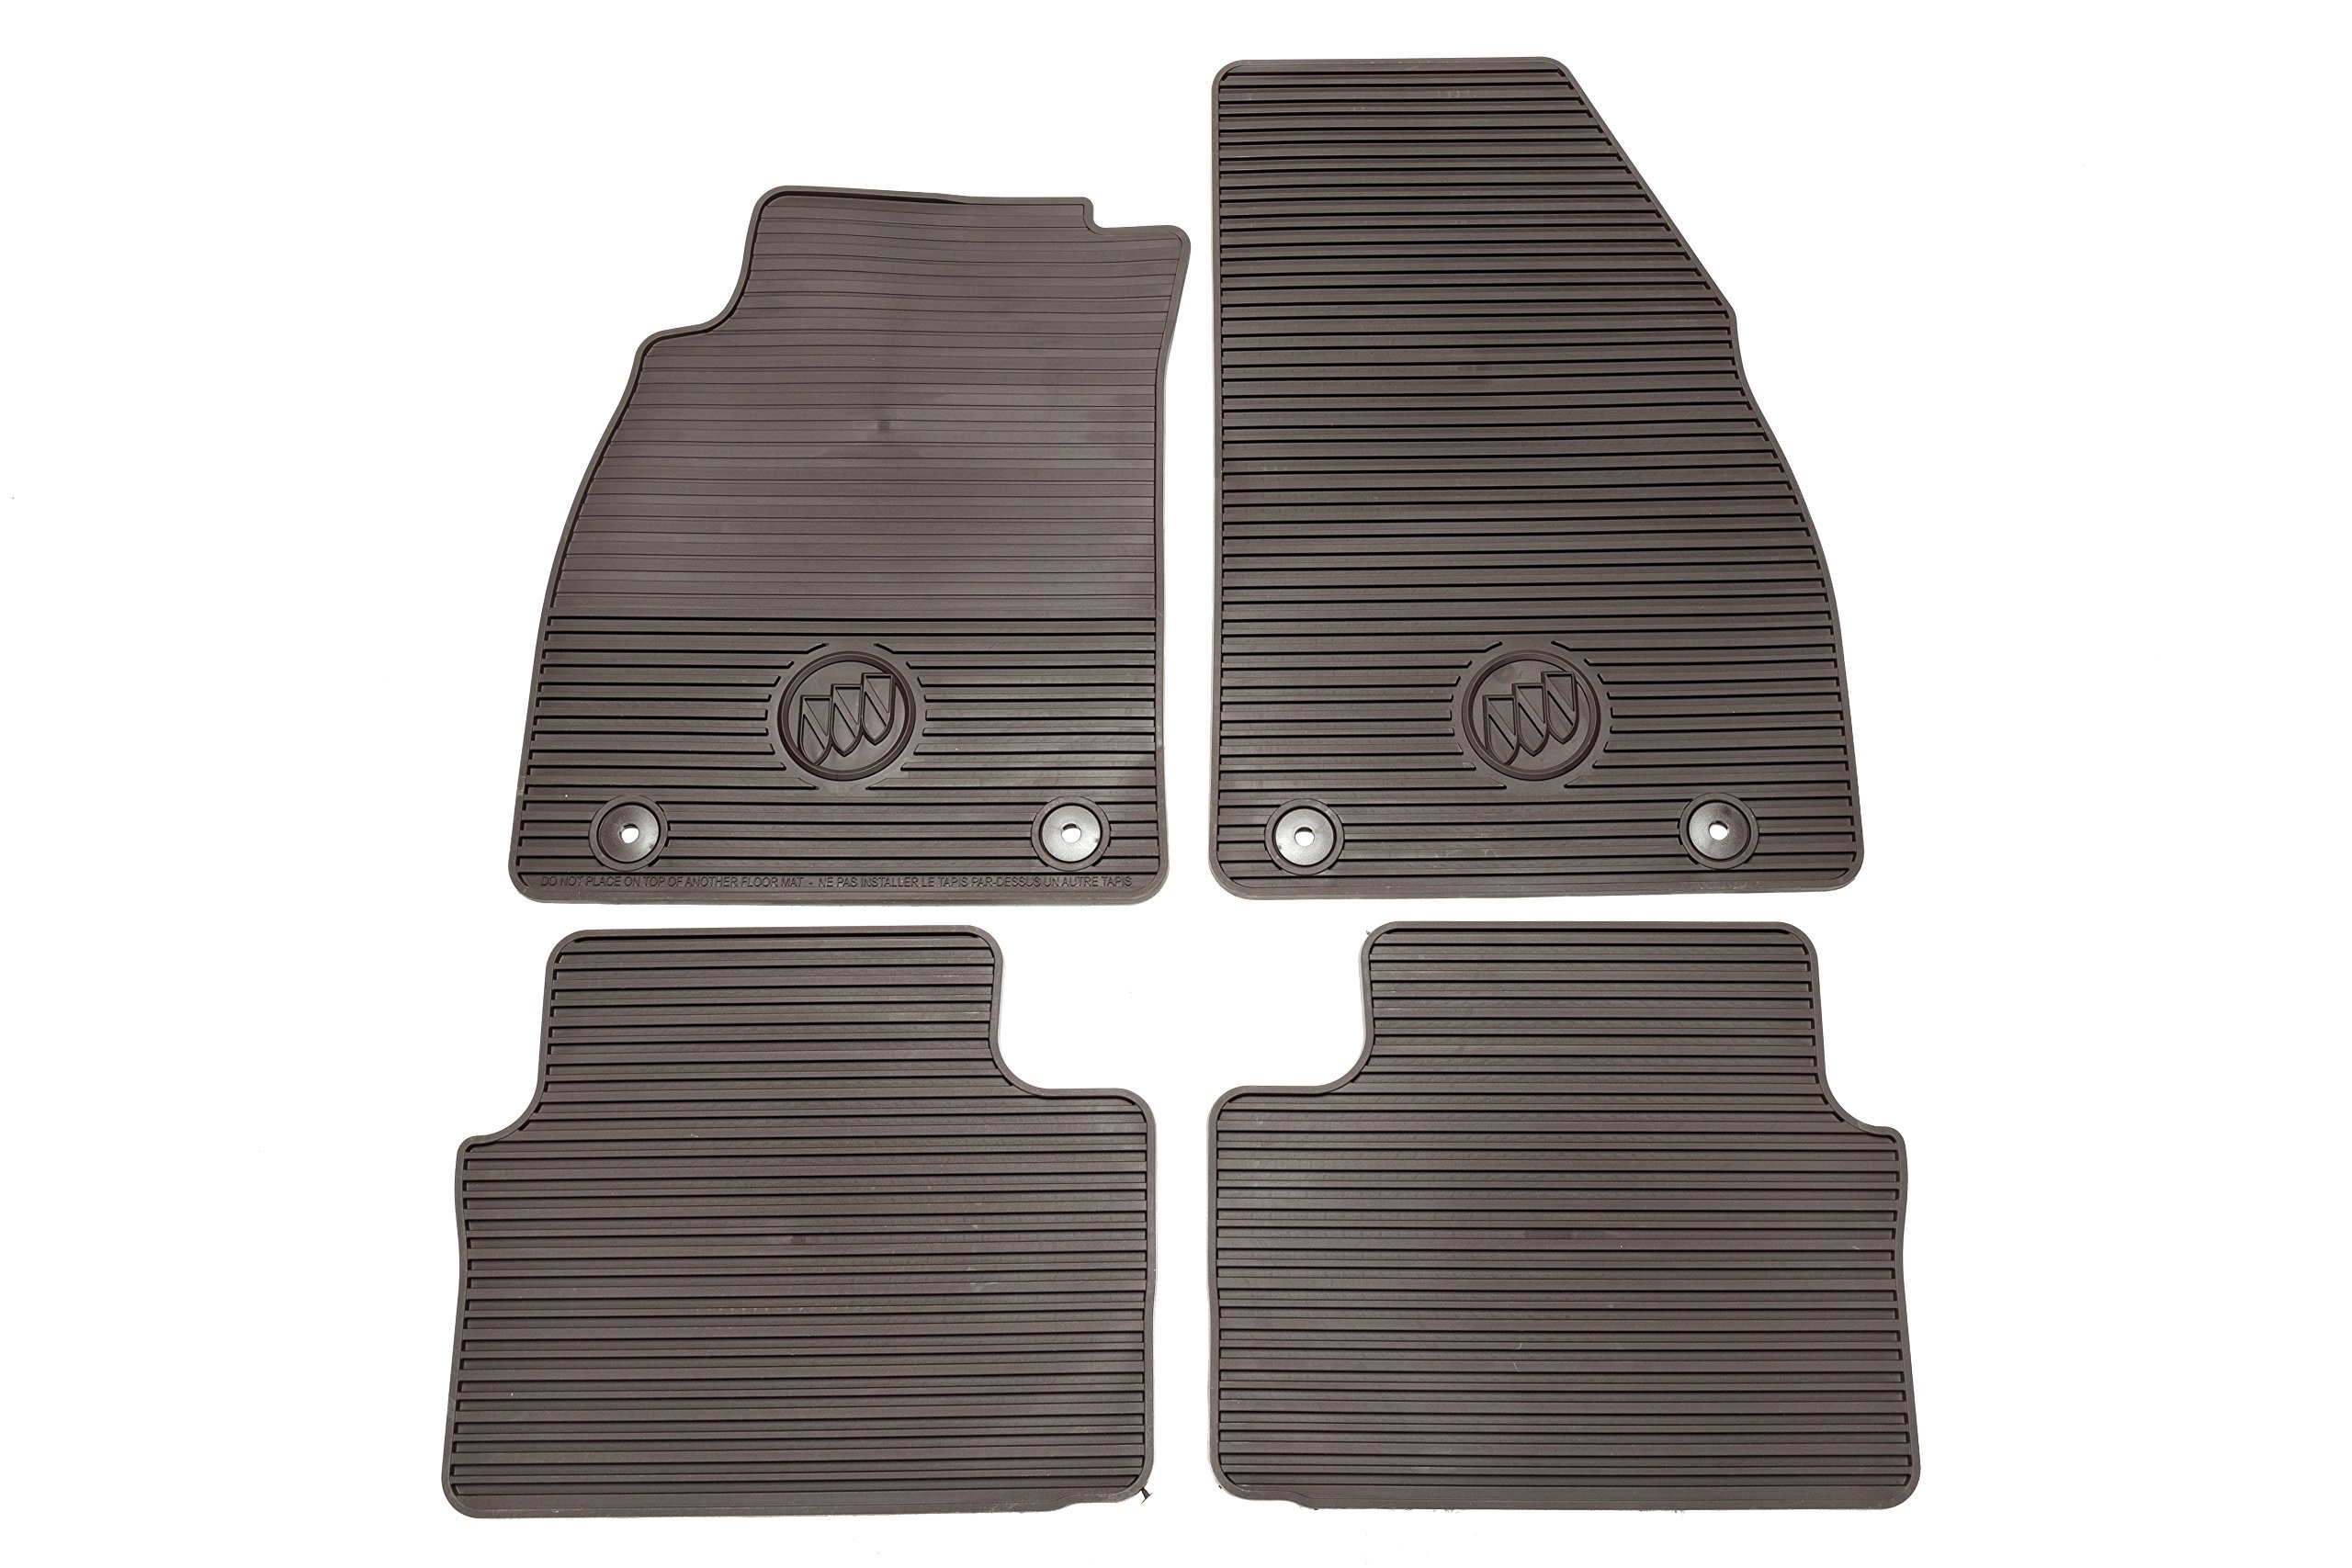 GM Accessories 22986346 Front and Rear All-Weather Floor Mats in Cocoa with Buick Logo